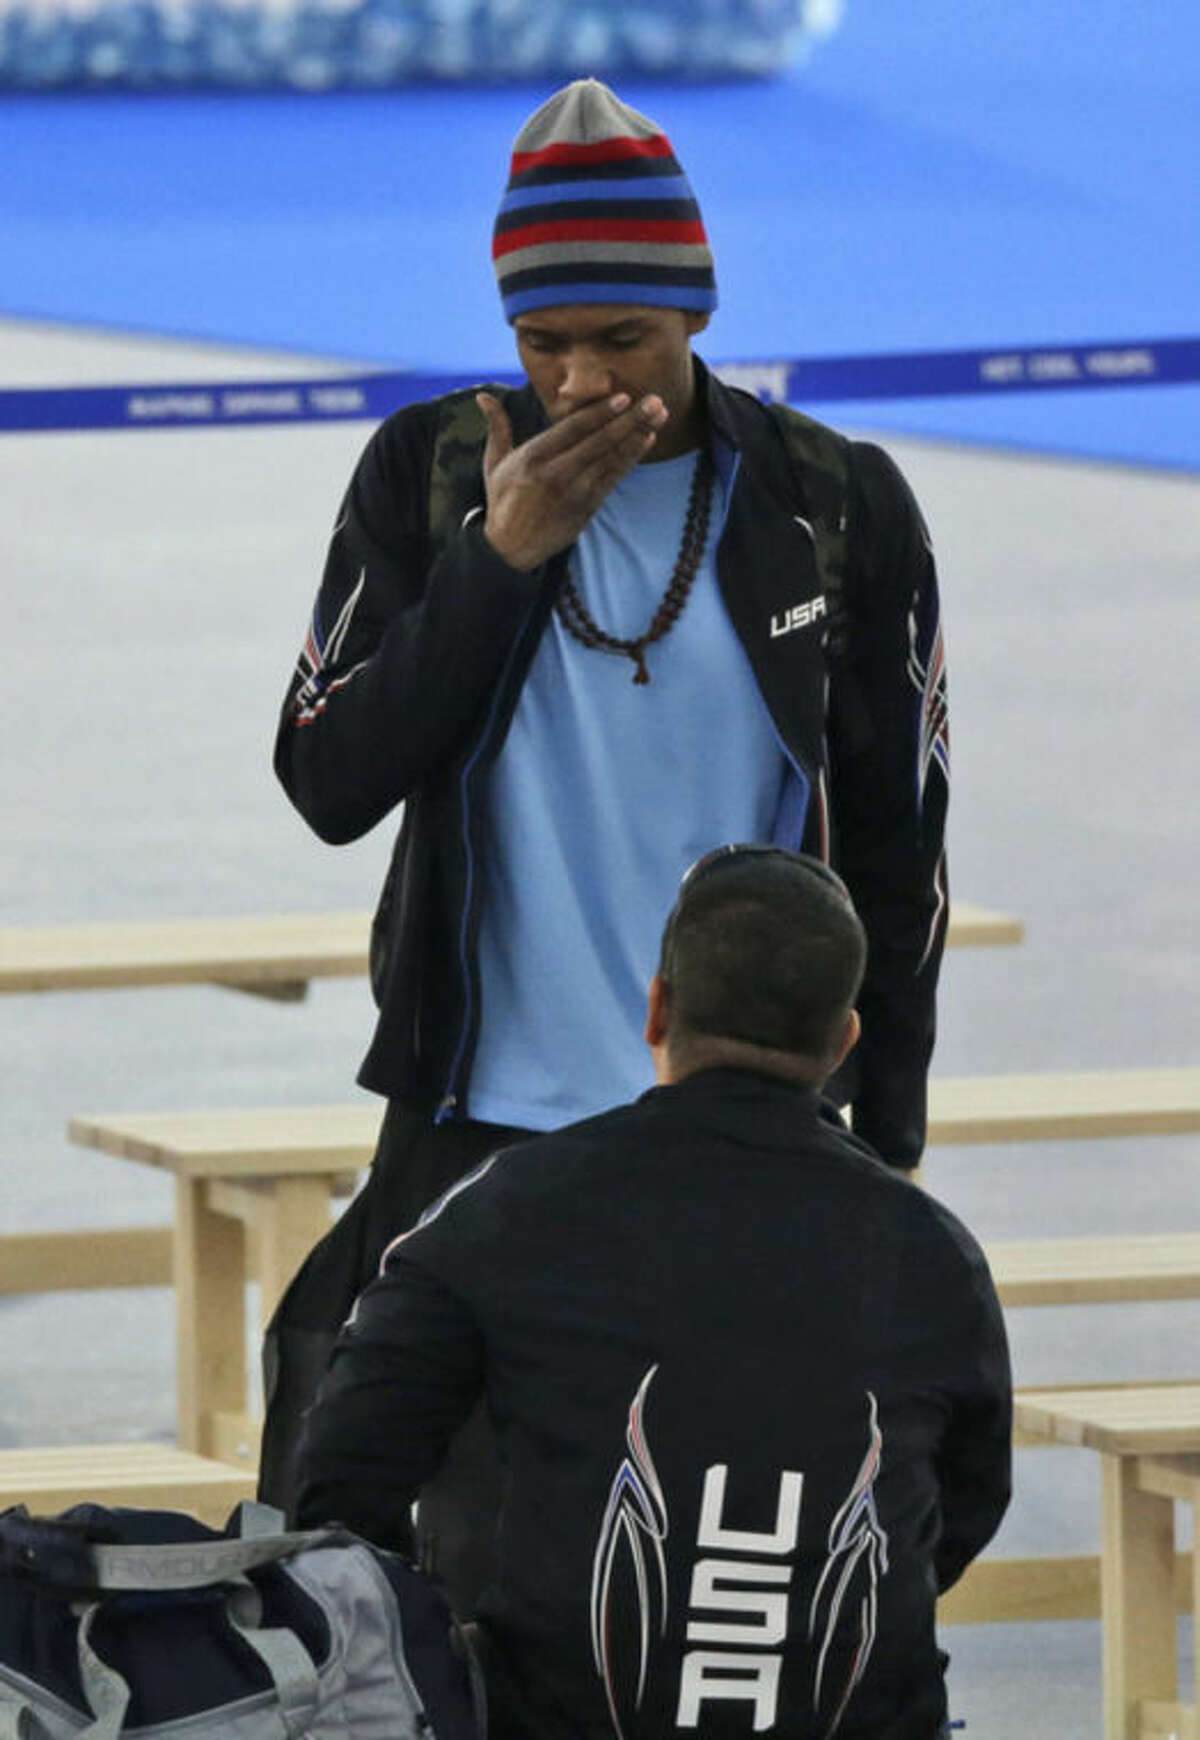 Shani Davis of the U.S. stands with his coach Ryan Shimabukuro and looks downward in dejection after the men's 1,000-meter speedskating race at the Adler Arena Skating Center during the 2014 Winter Olympics in Sochi, Russia, Wednesday, Feb. 12, 2014. (AP Photo/David J. Phillip )